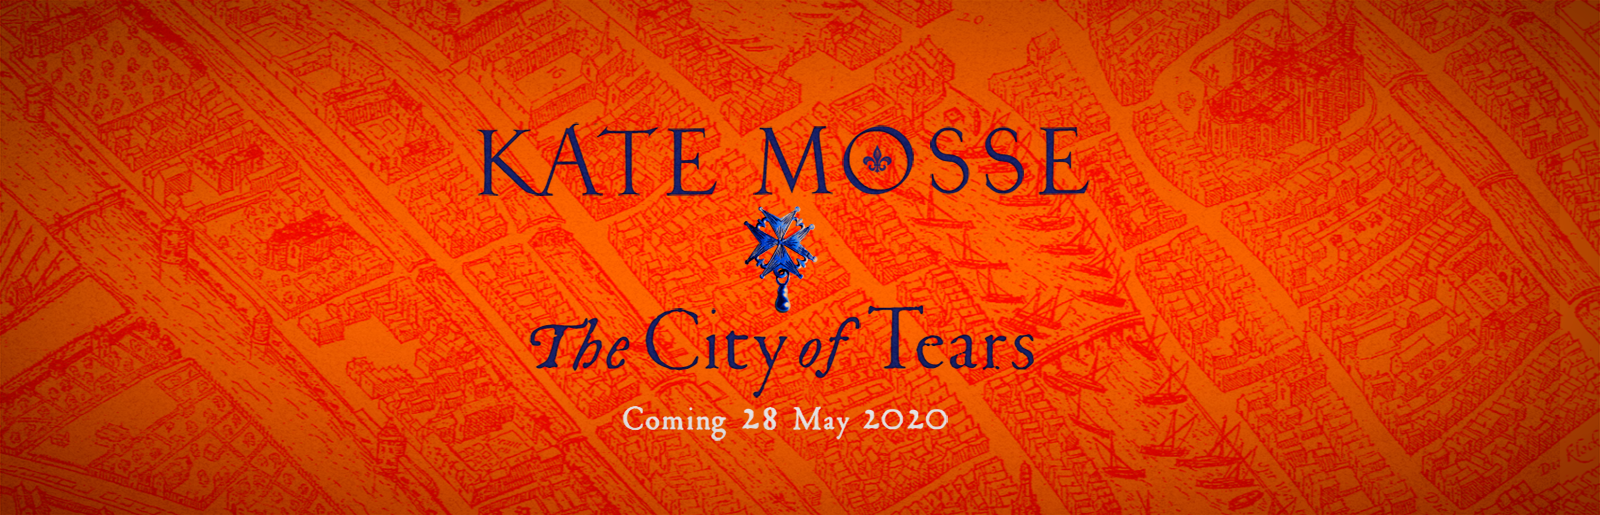 City Of Tears Bannerresized